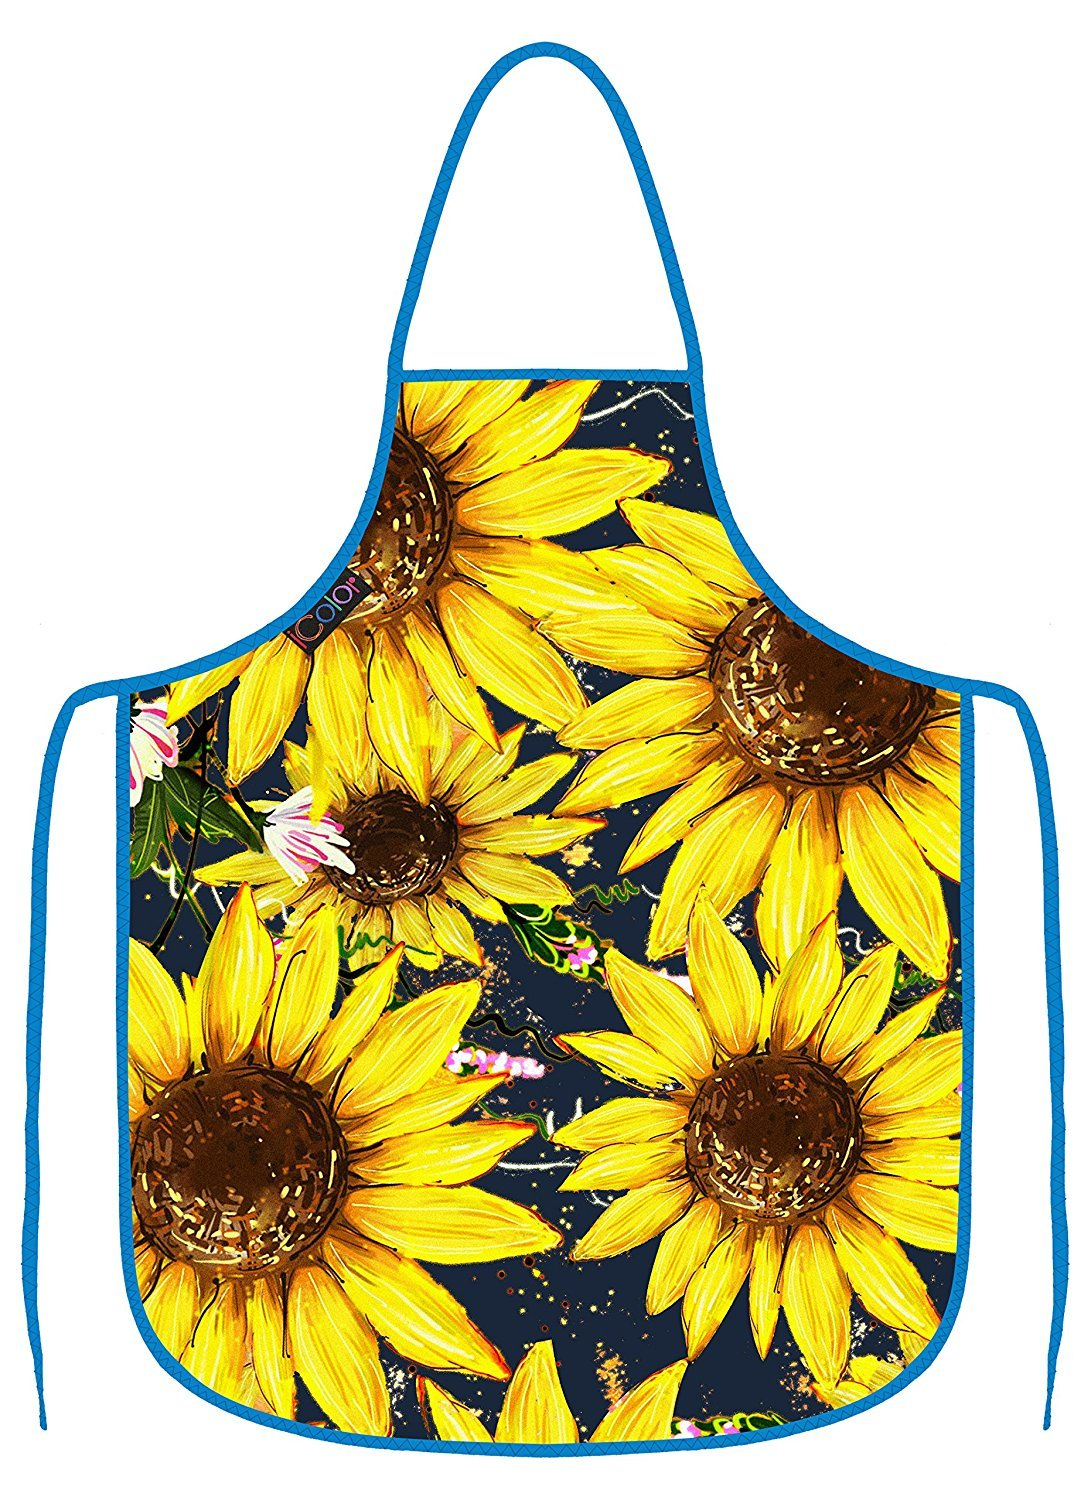 ICOLOR Cooking Apron,Funny BBQ or Kitchen Aprons,Machine Washable,Premium Quality Bib Aprons for Women and Men,Ideal for Kitchen,Parties,Garden,Camping /& More Choose Your Color AP-17